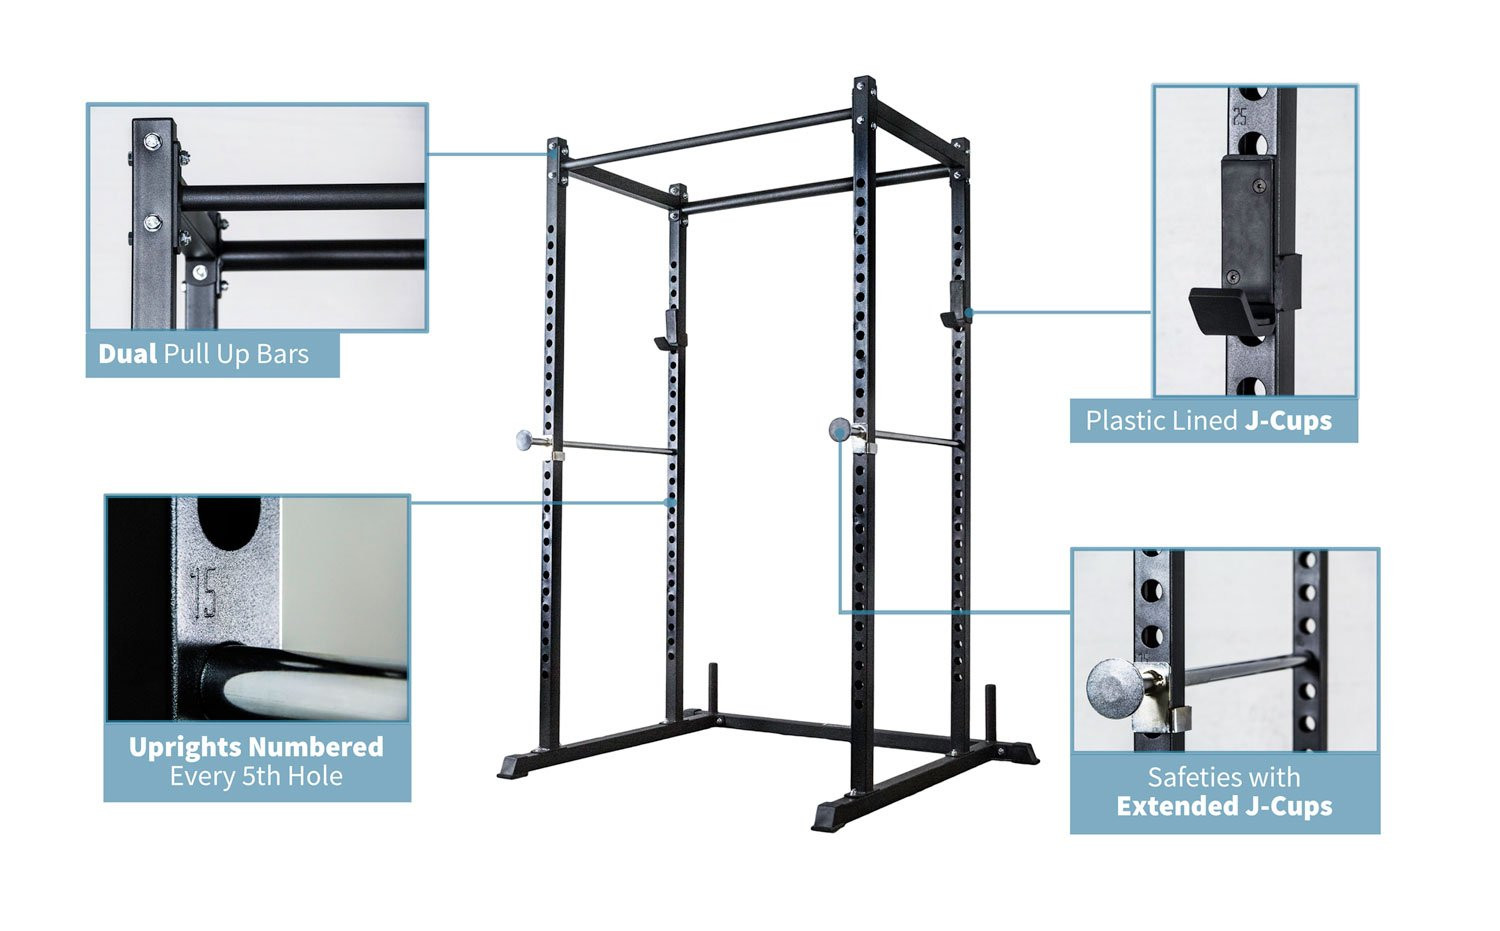 Rep Power Rack with Dual Pullup Bars, Numbered Uprights, 700 lb Rated, and Optional Upgrades